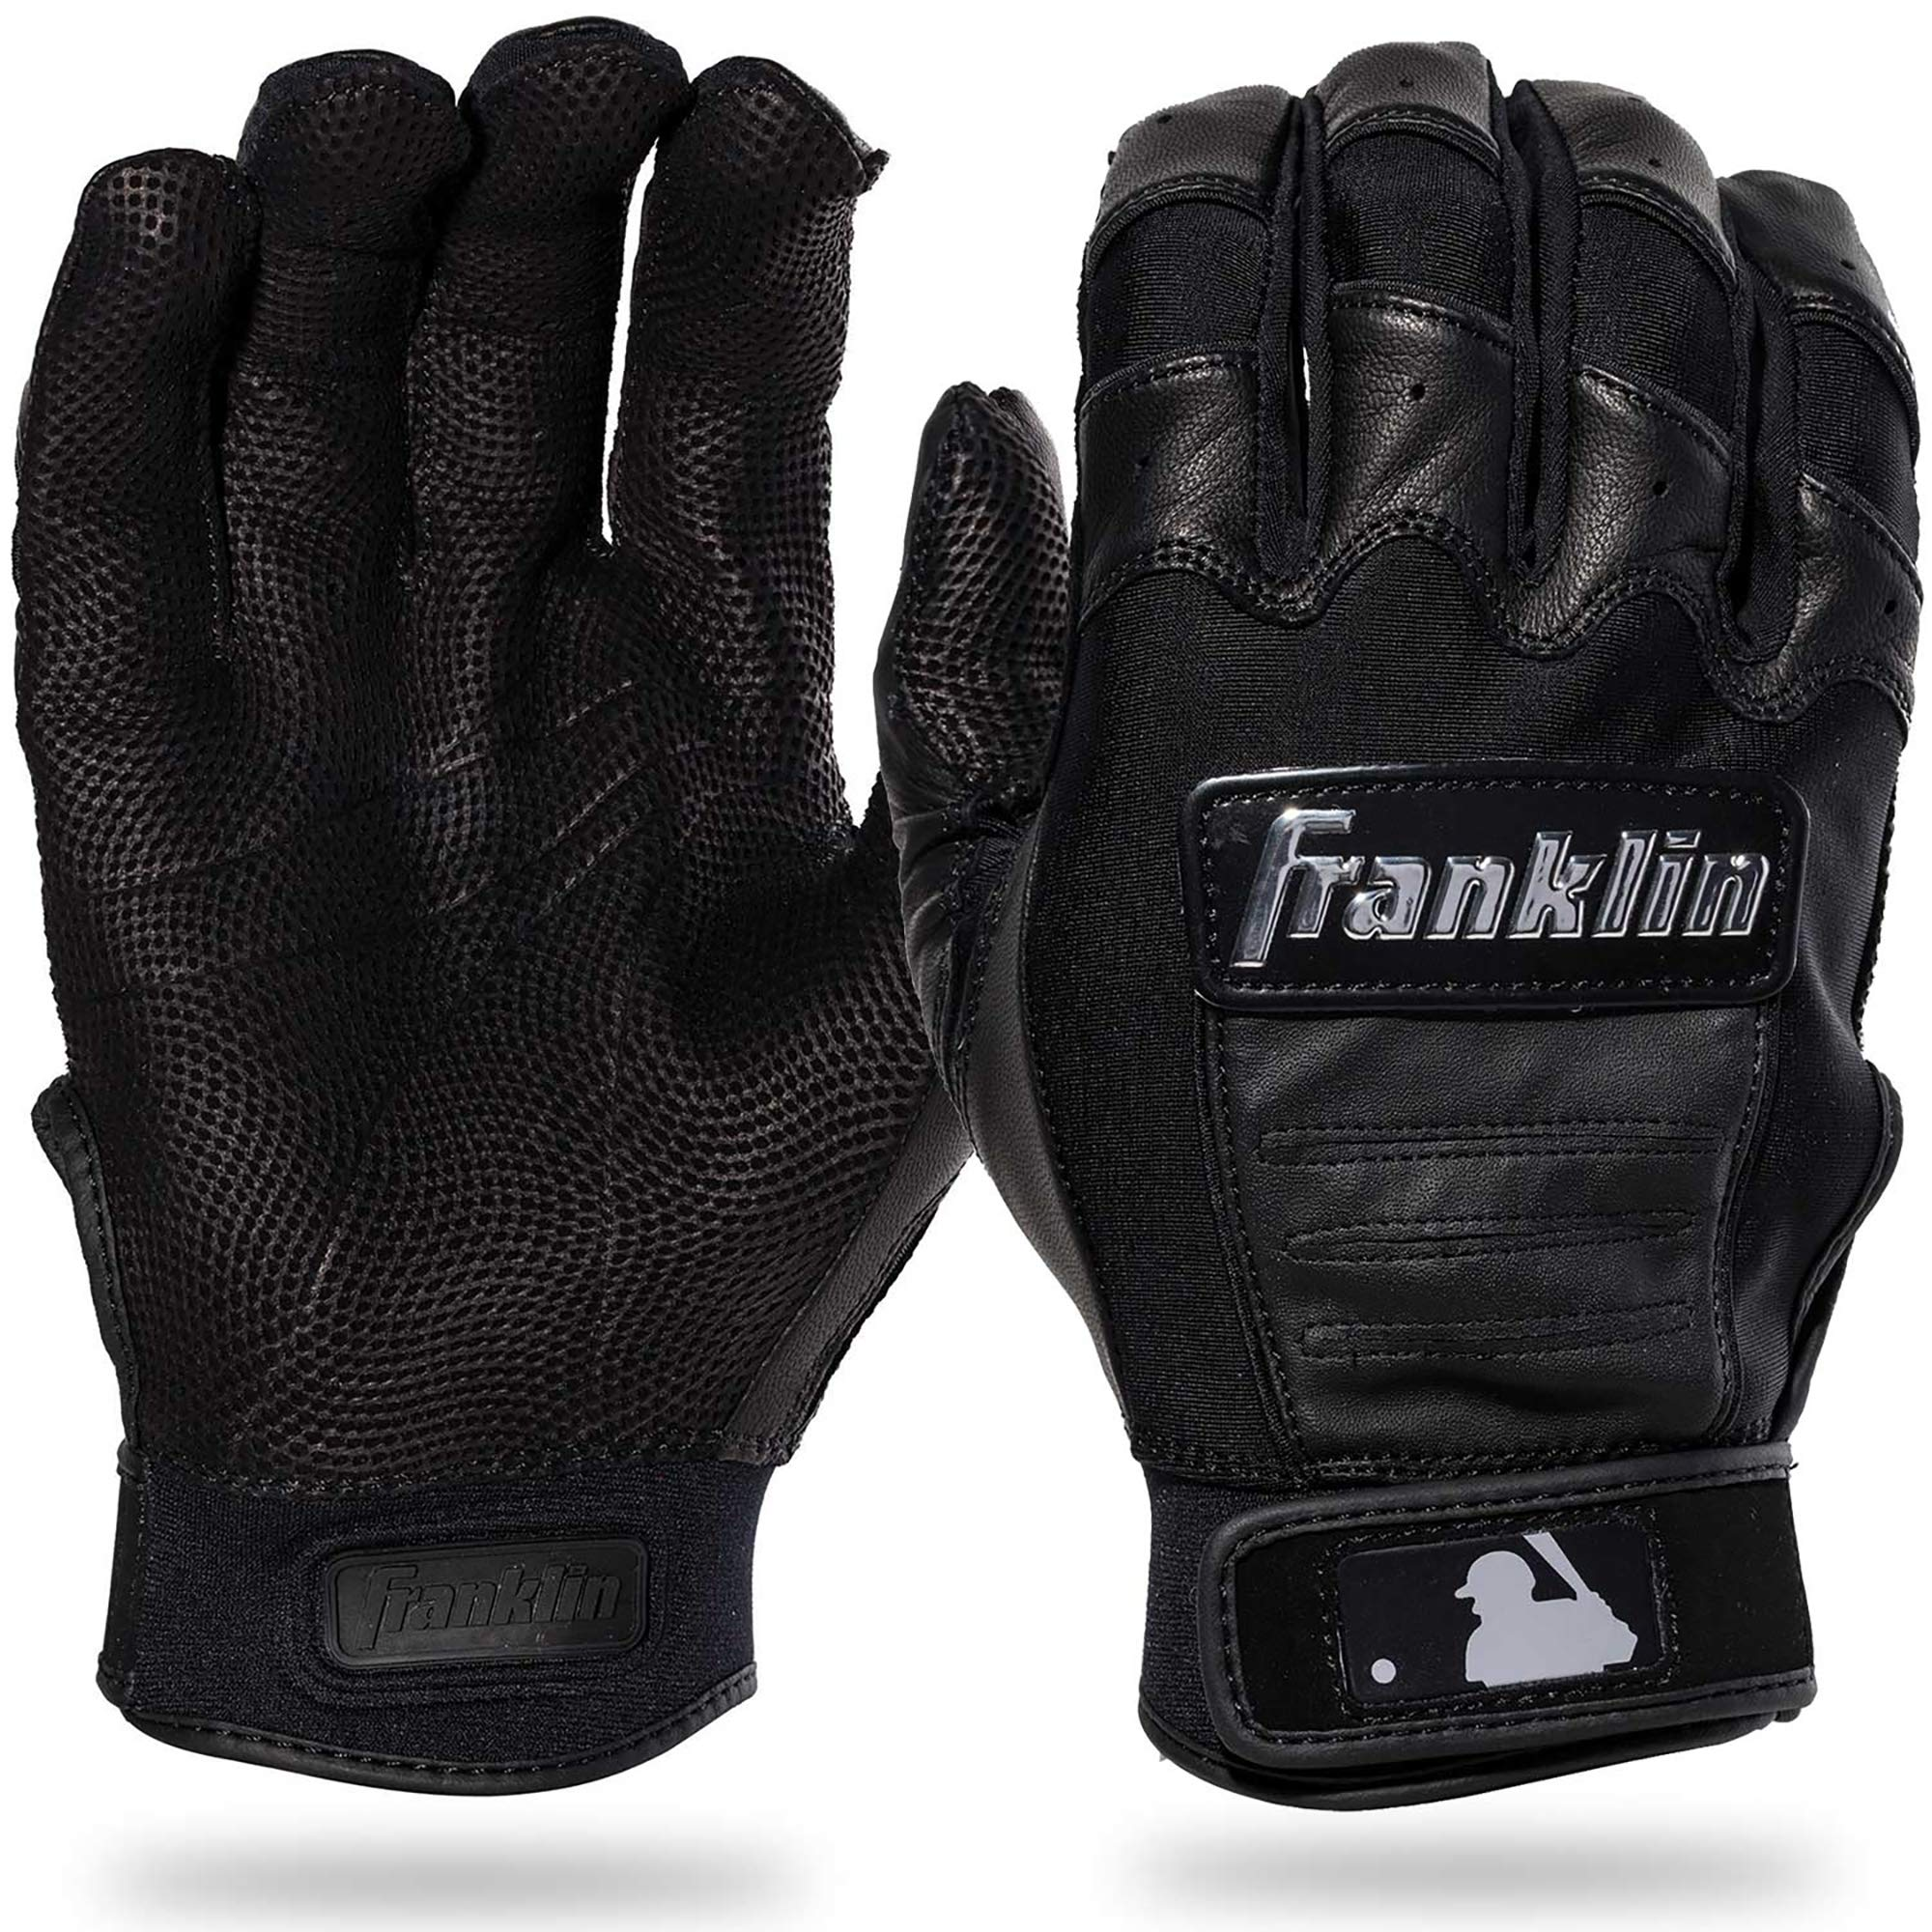 Franklin Sports CFX Pro Full Color Chrome Series Batting Gloves CFX Pro Full Color Chrome Batting Gloves, Black, Adult Small